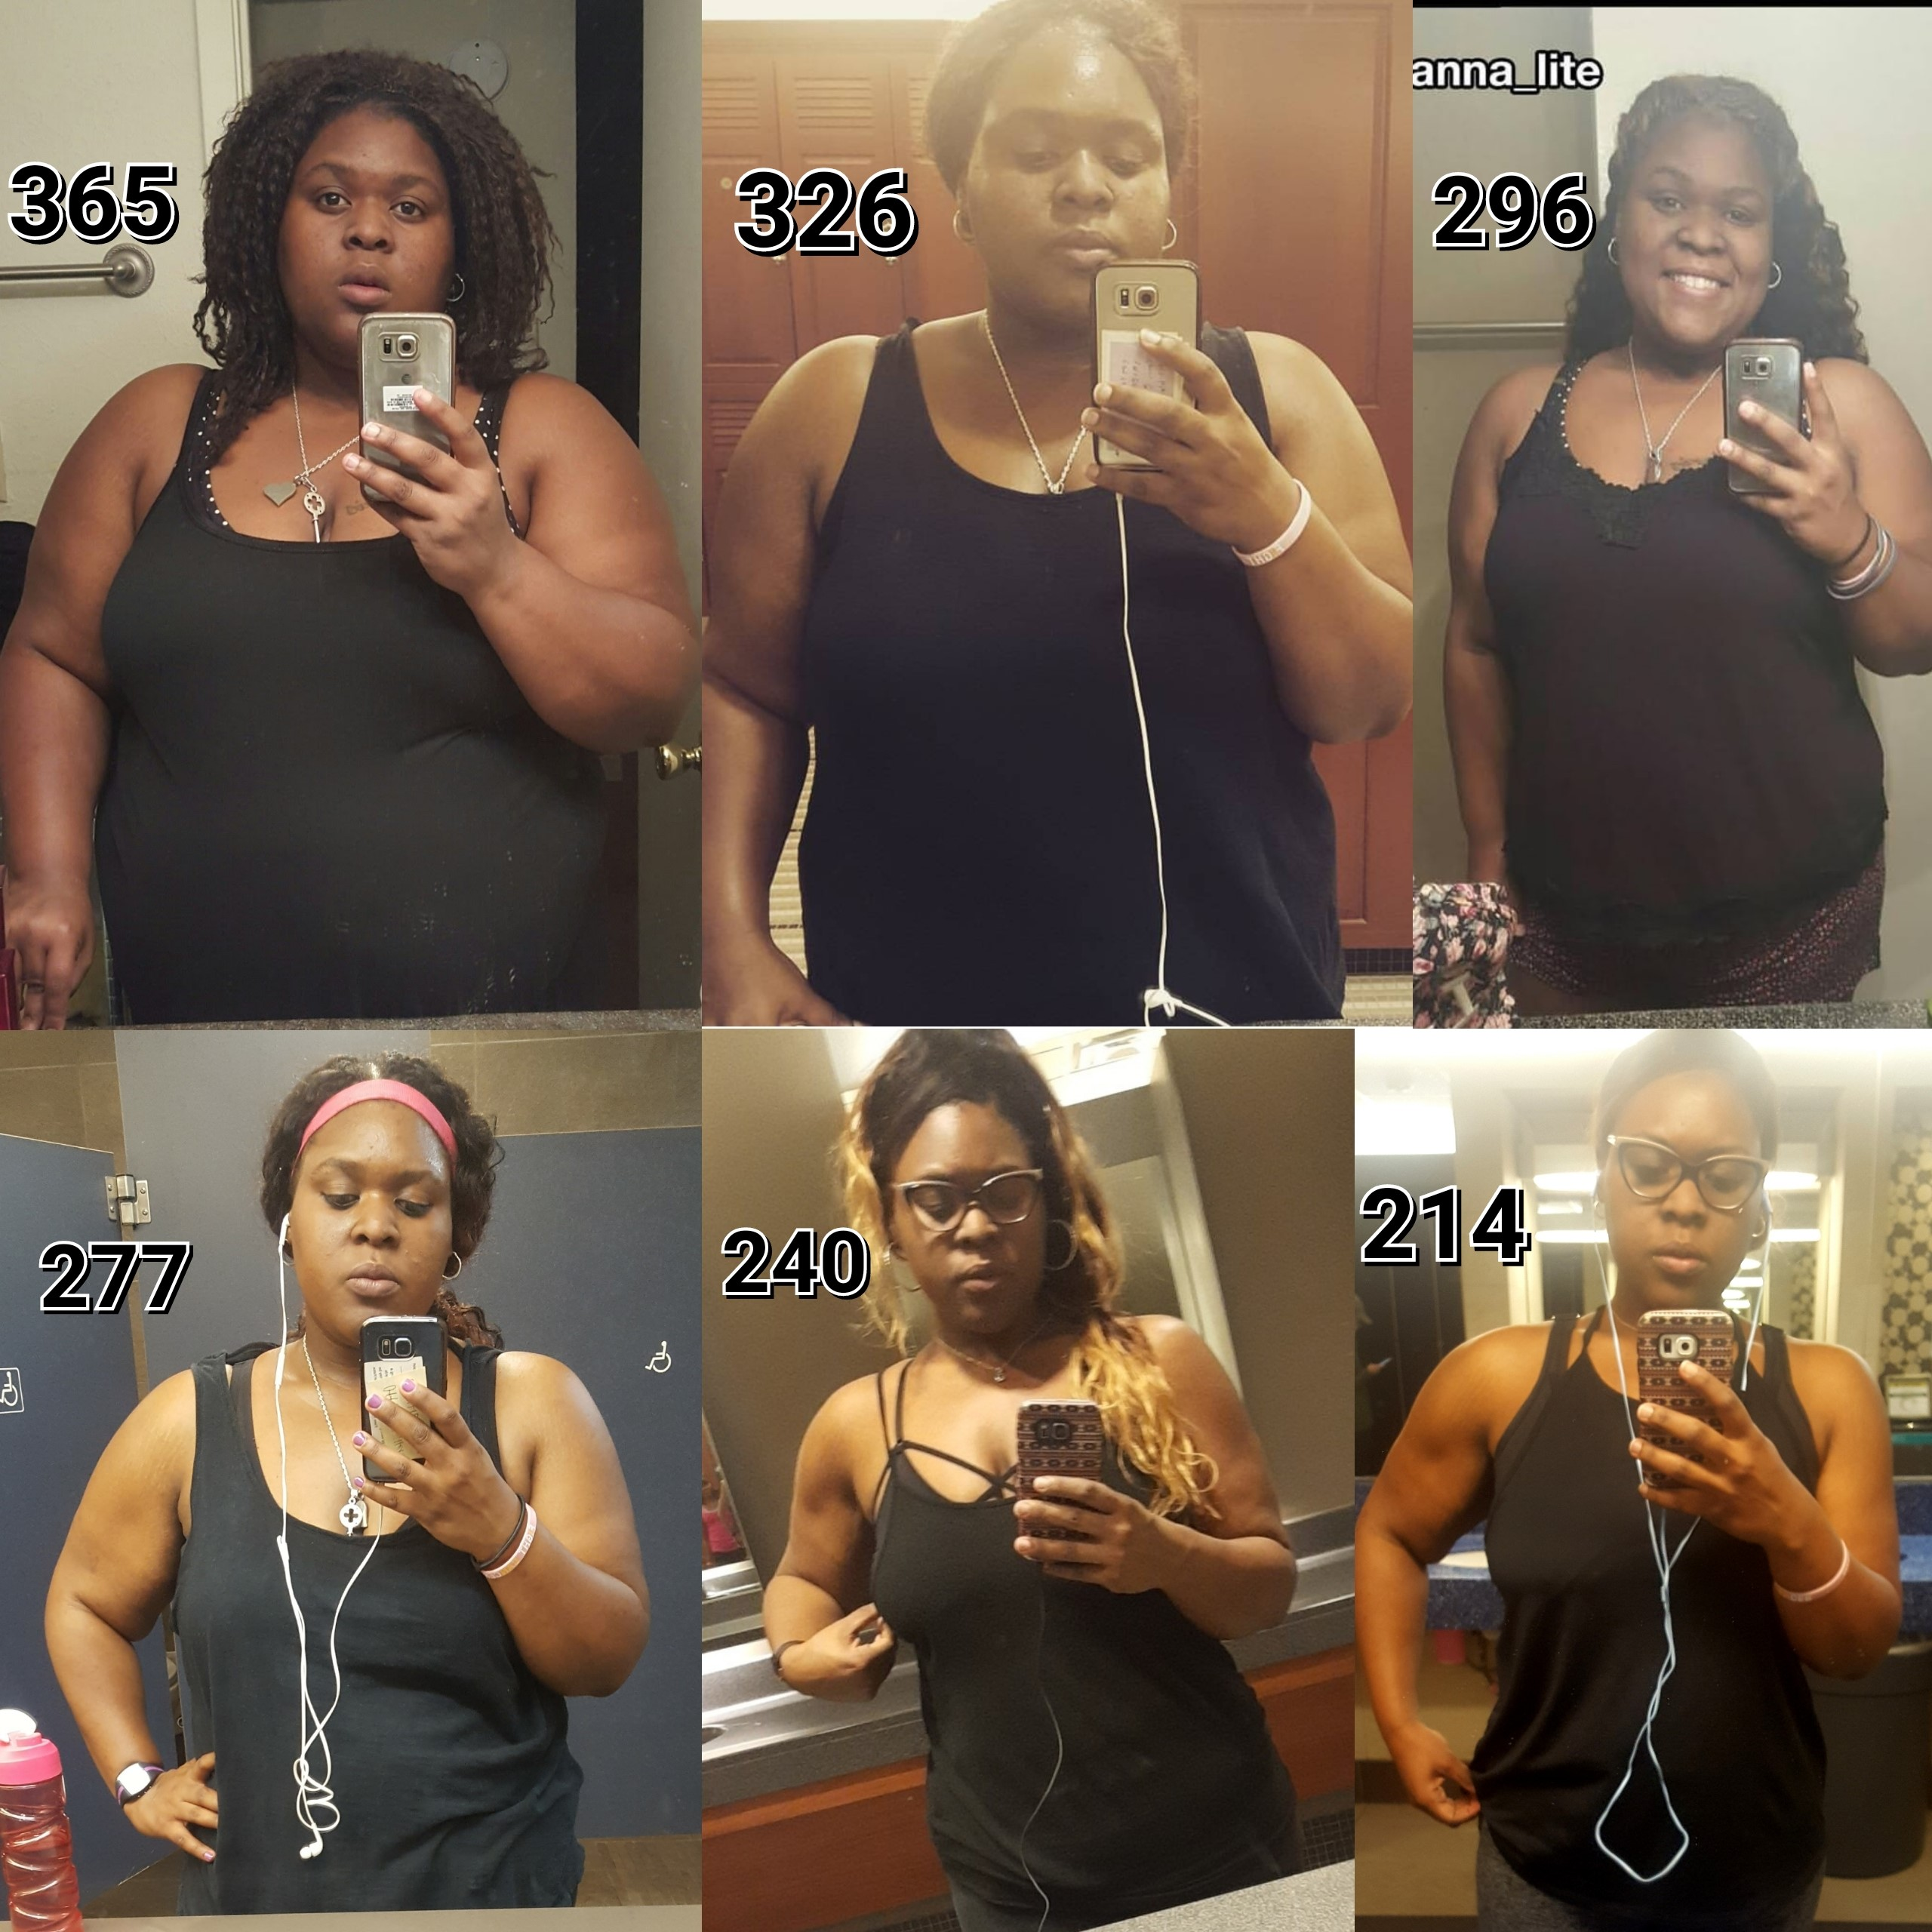 NauBriana lost 150 pounds! See my before and after weight loss pictures, and read amazing weight loss success stories from real women and their best weight loss diet plans and programs. Motivation to lose weight with walking and inspiration from before and after weightloss pics and photos.